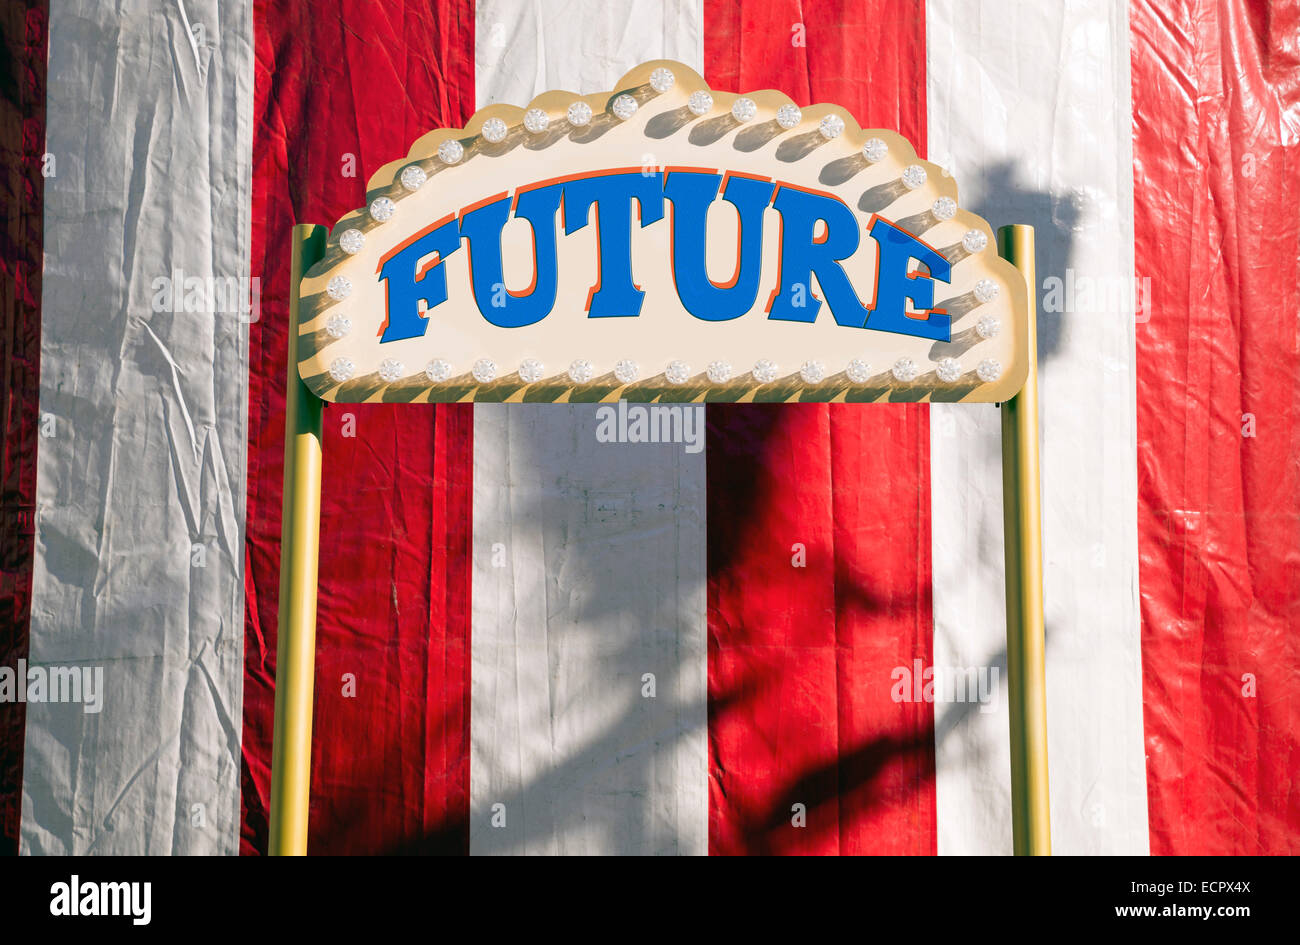 Future sign sign against red and white circus tents - Stock Image